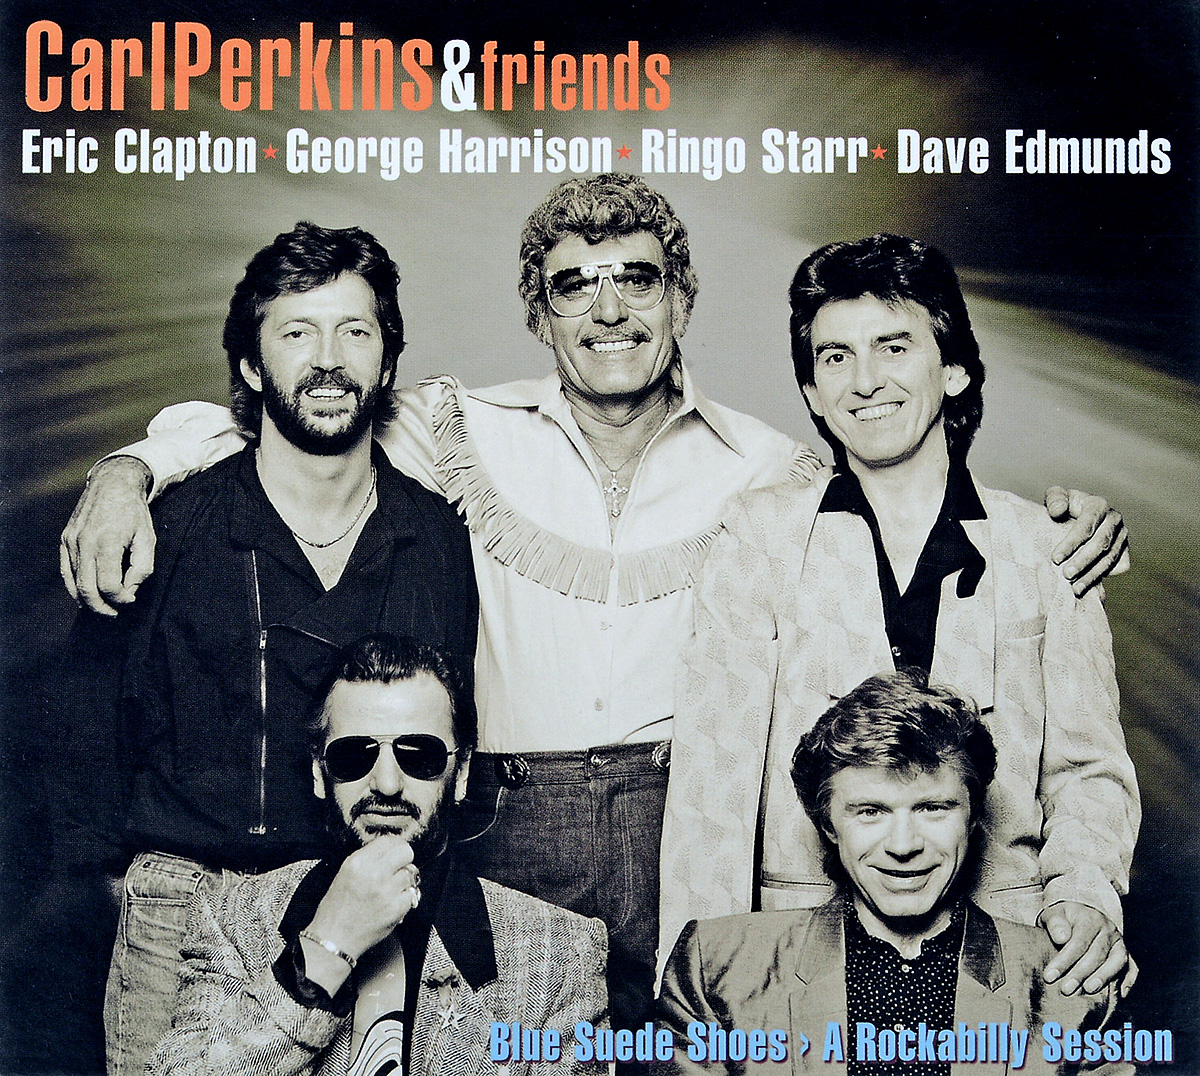 Carl Perkins & Friends: Blue Suede Shoes: A Rockabilly Session: 30th Anniversary Edition (CD + DVD) a500g mens watches top brand luxury tvg brand men business casual watch stainless steel strap quartz watch fashion sports watche